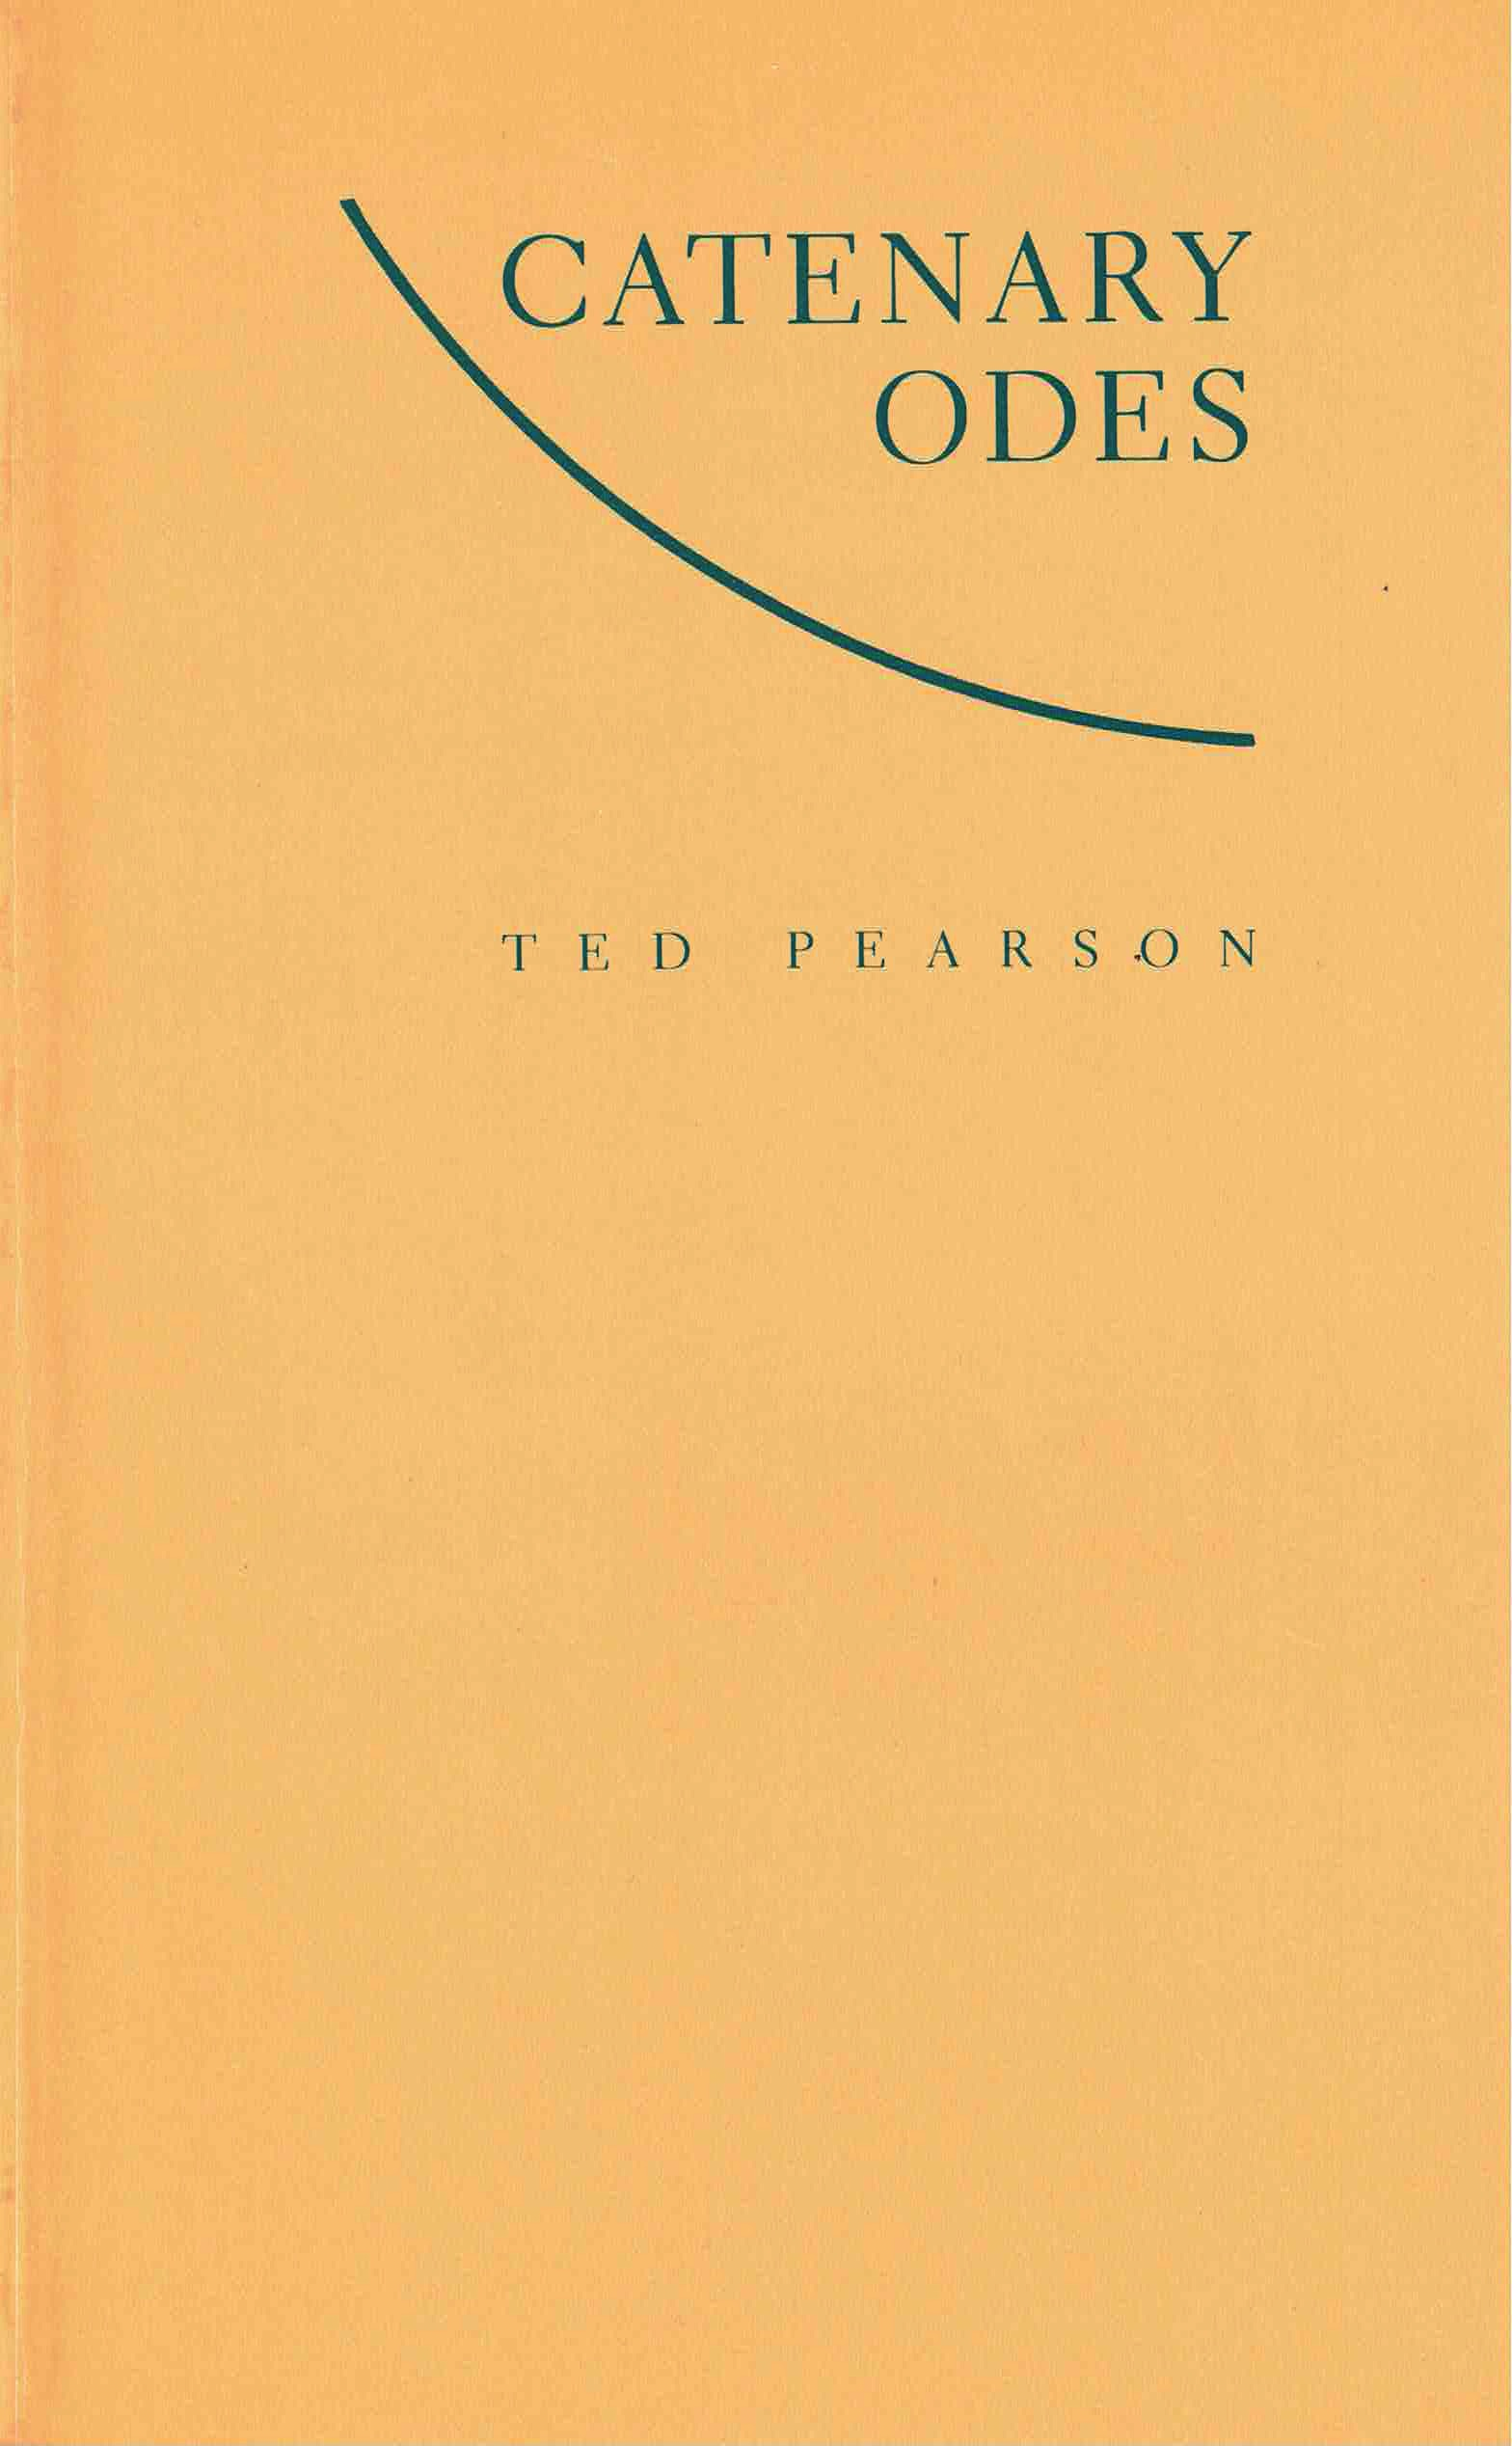 cover of Catenary Odes by Ted Pearson; light yellow-brown background, title is rght-justified at top right corner of the page in green typed writing with a curved green line that boxes it into the corner, author name is just below in smaller green typed writing, also right-justified